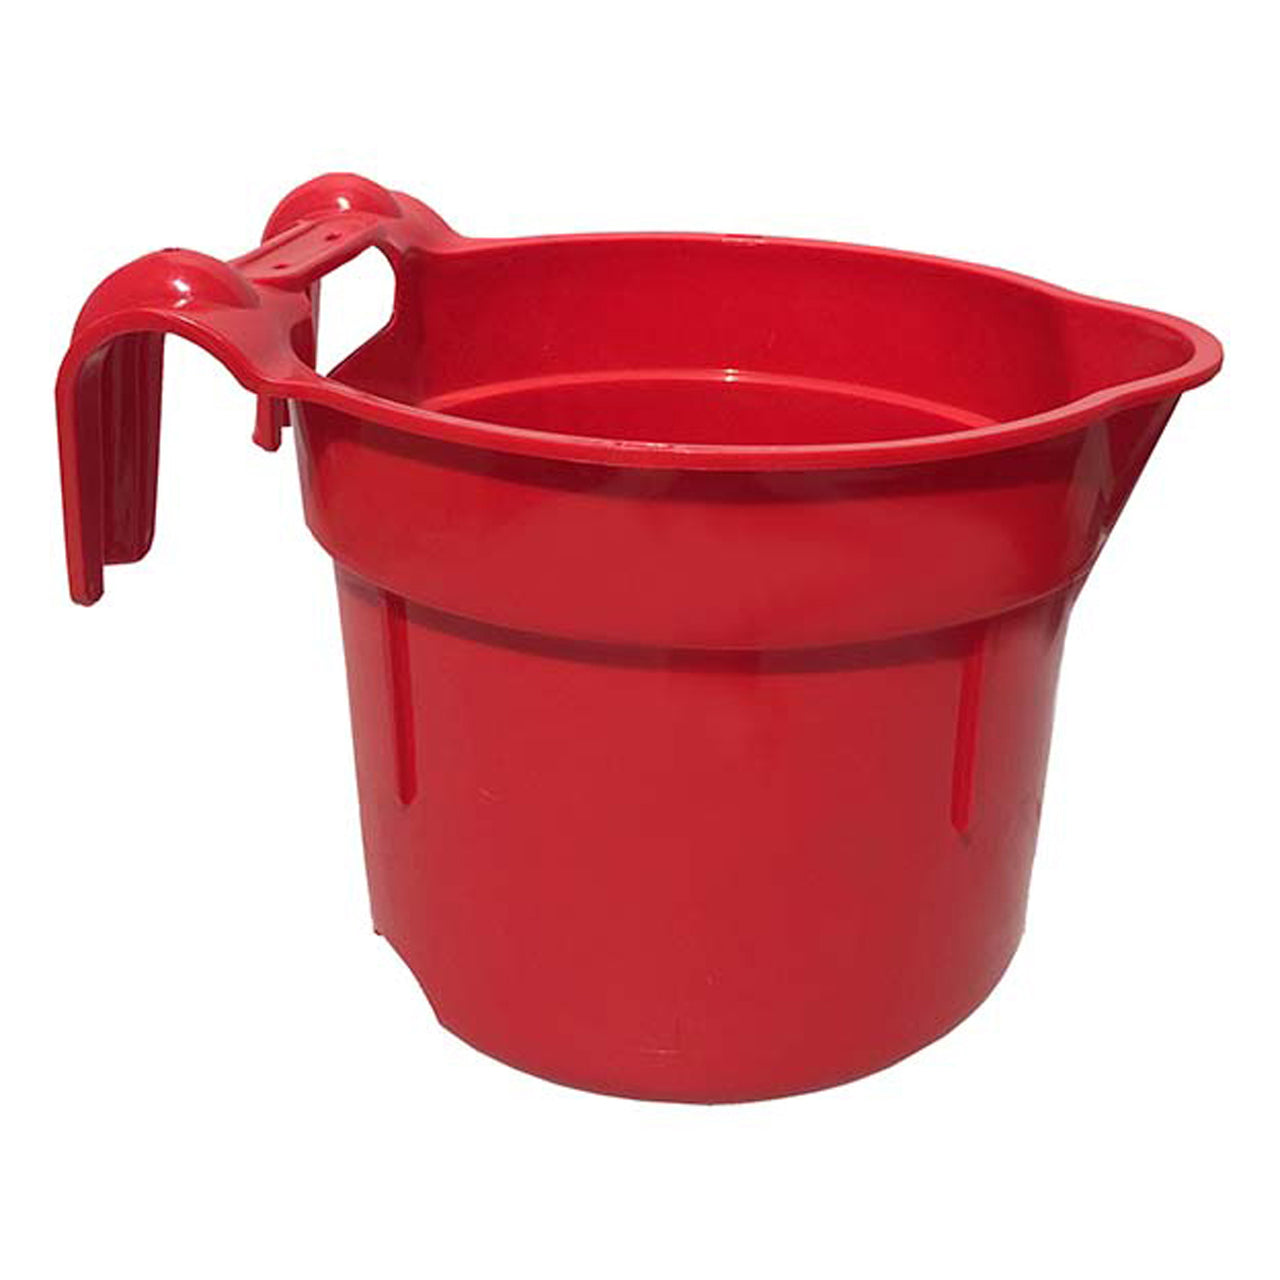 Tuff Stuff Round Fence Feeder 10 Qts - Red - Buckets Pails Feeders Scoops Tubs Bottles Tuff Stuff - Canada